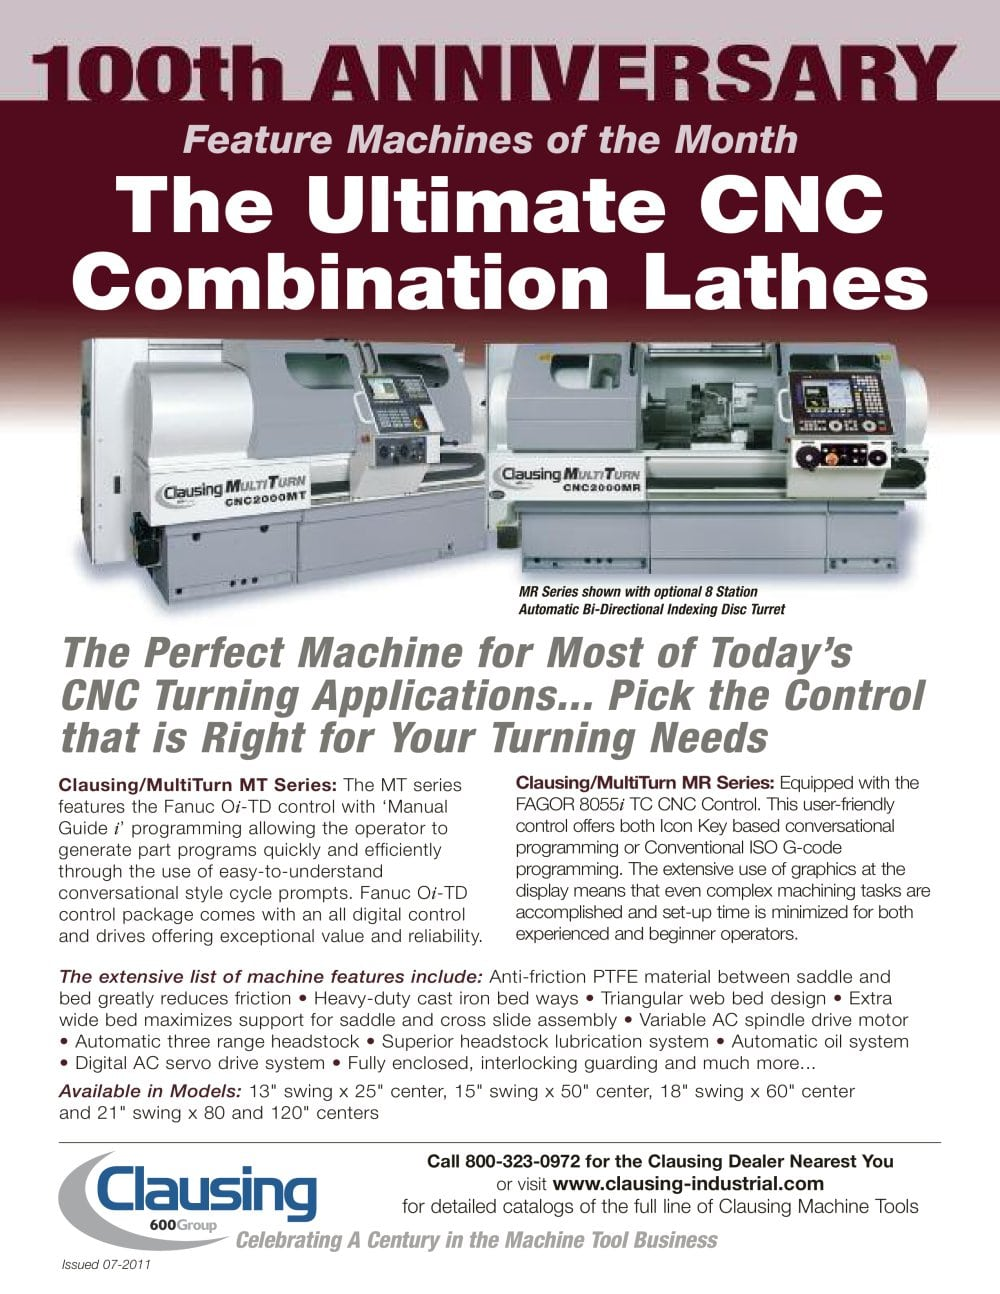 The Ultimate CNC Combination Lathes - 1 / 1 Pages